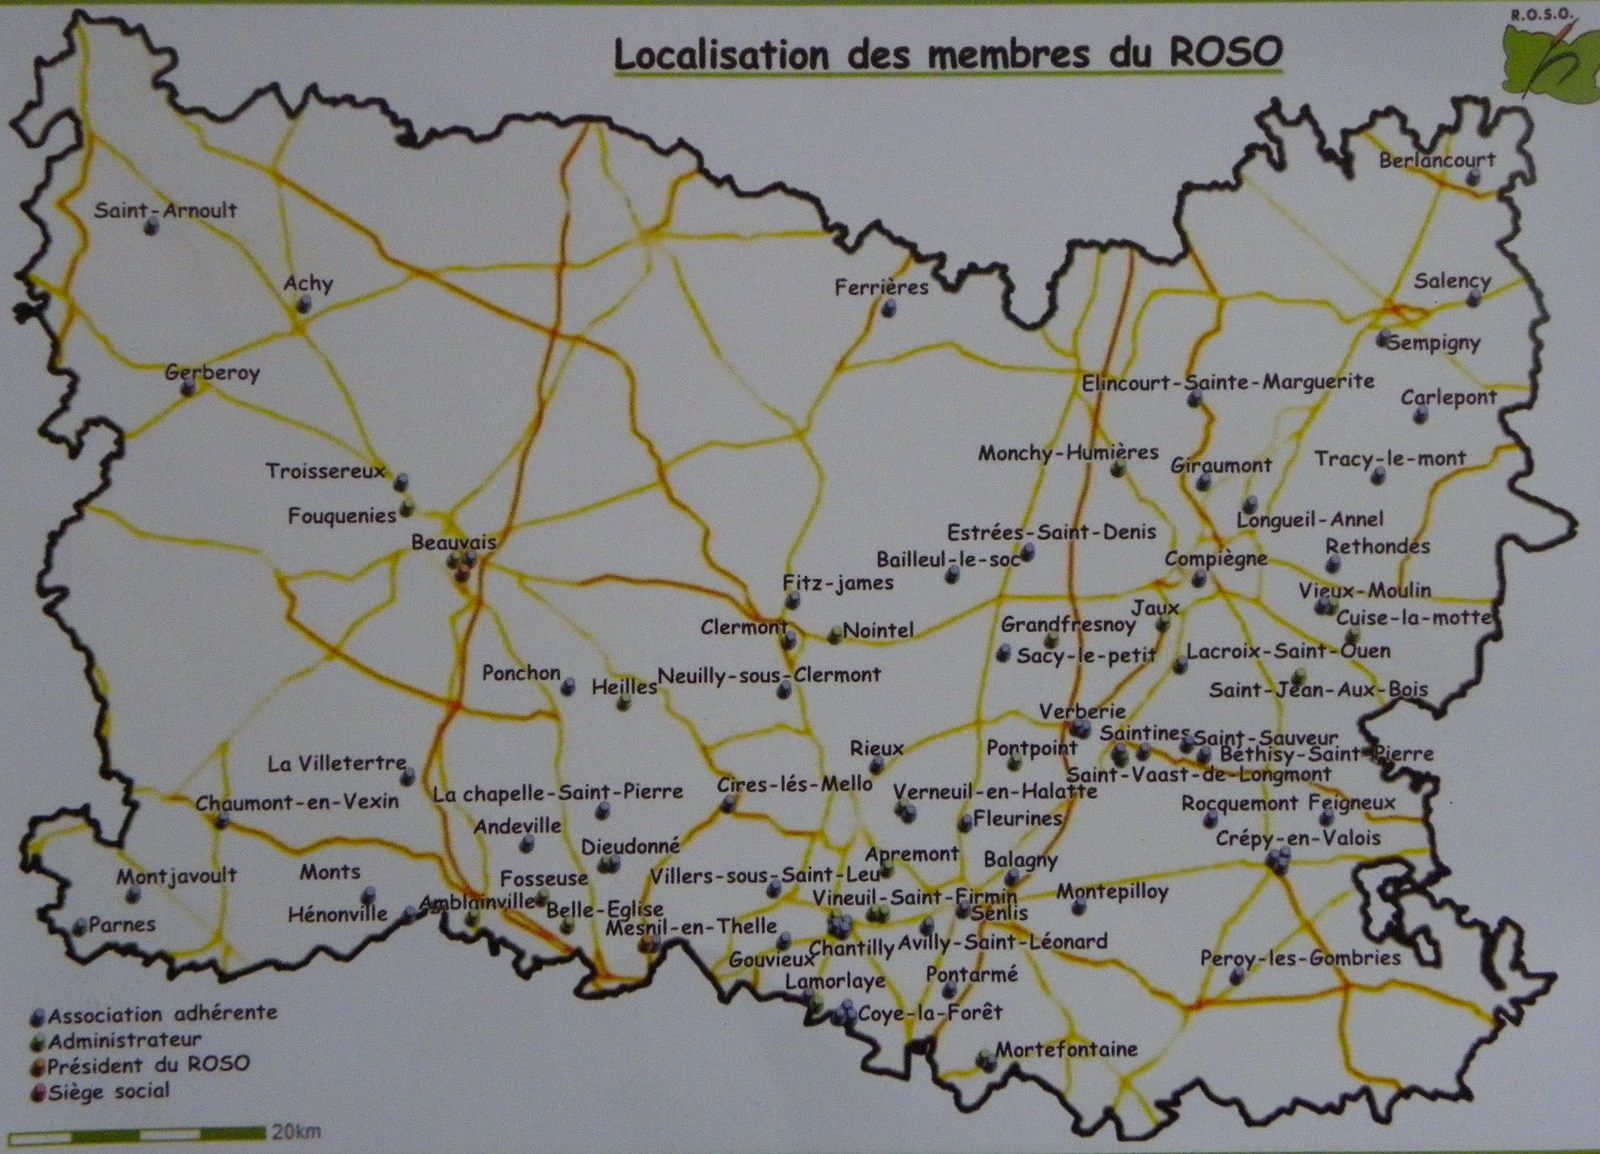 Carte d'implantation du ROSO